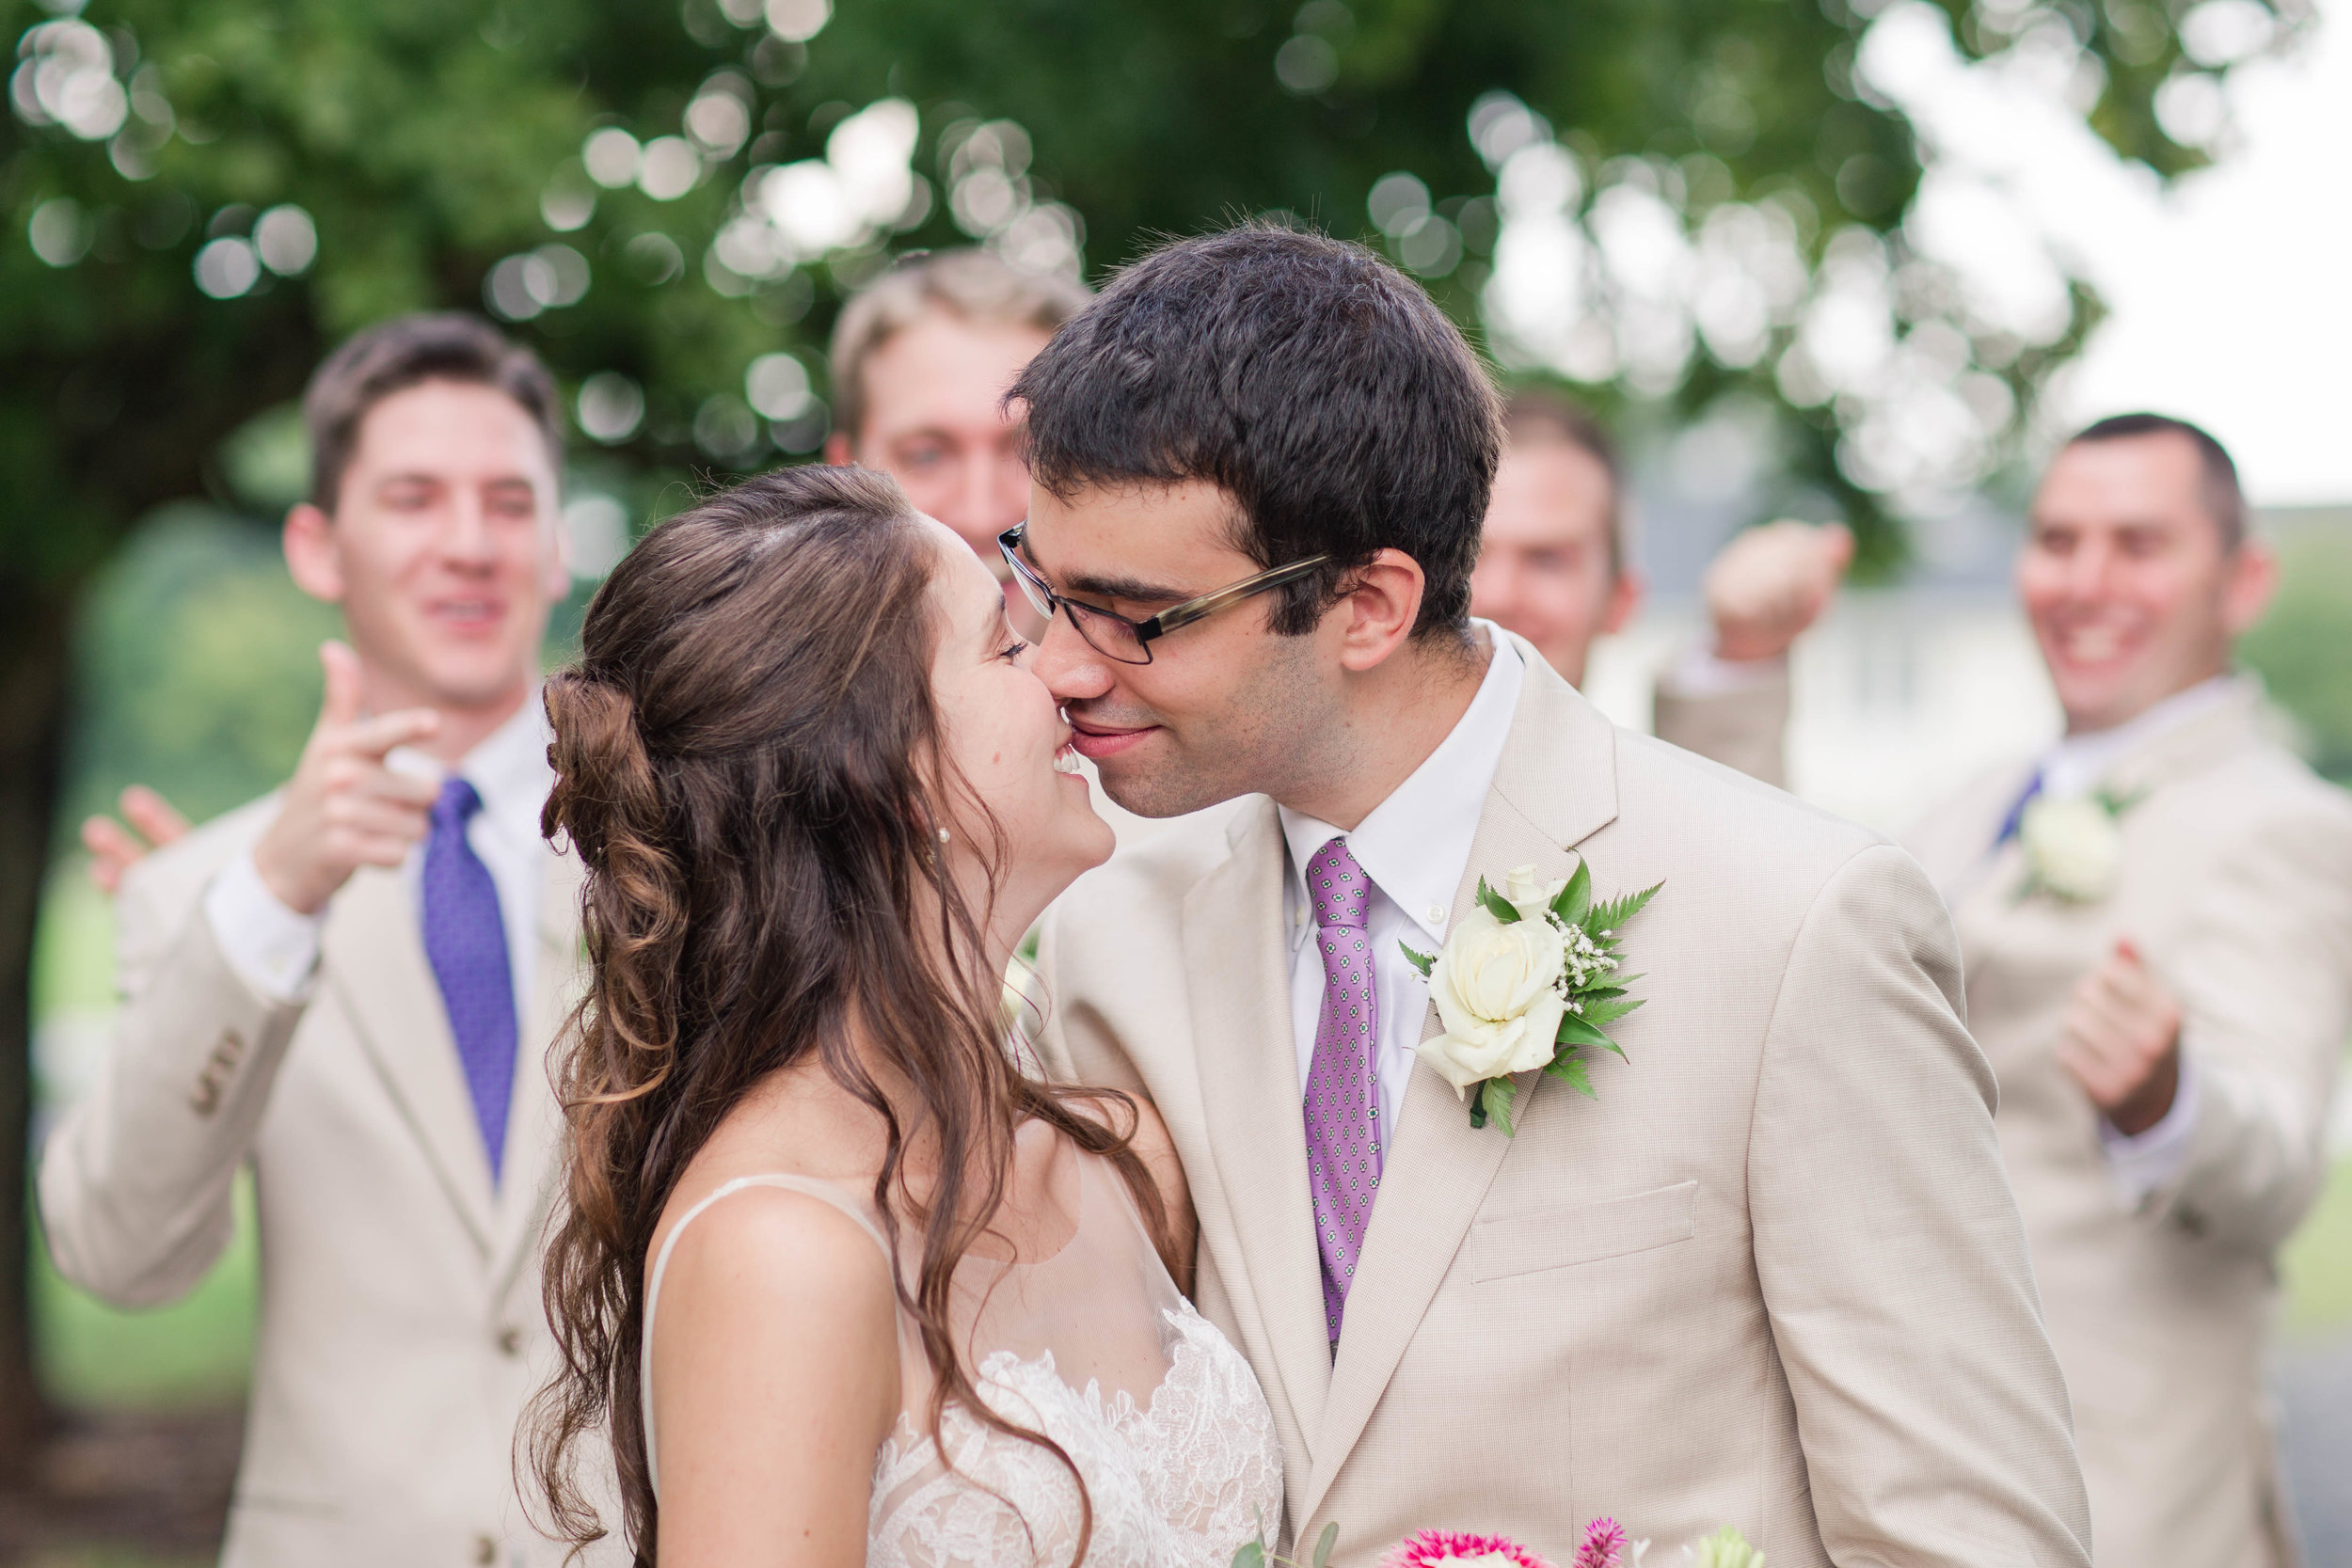 Amato_Family and Bridal Party_159.jpg